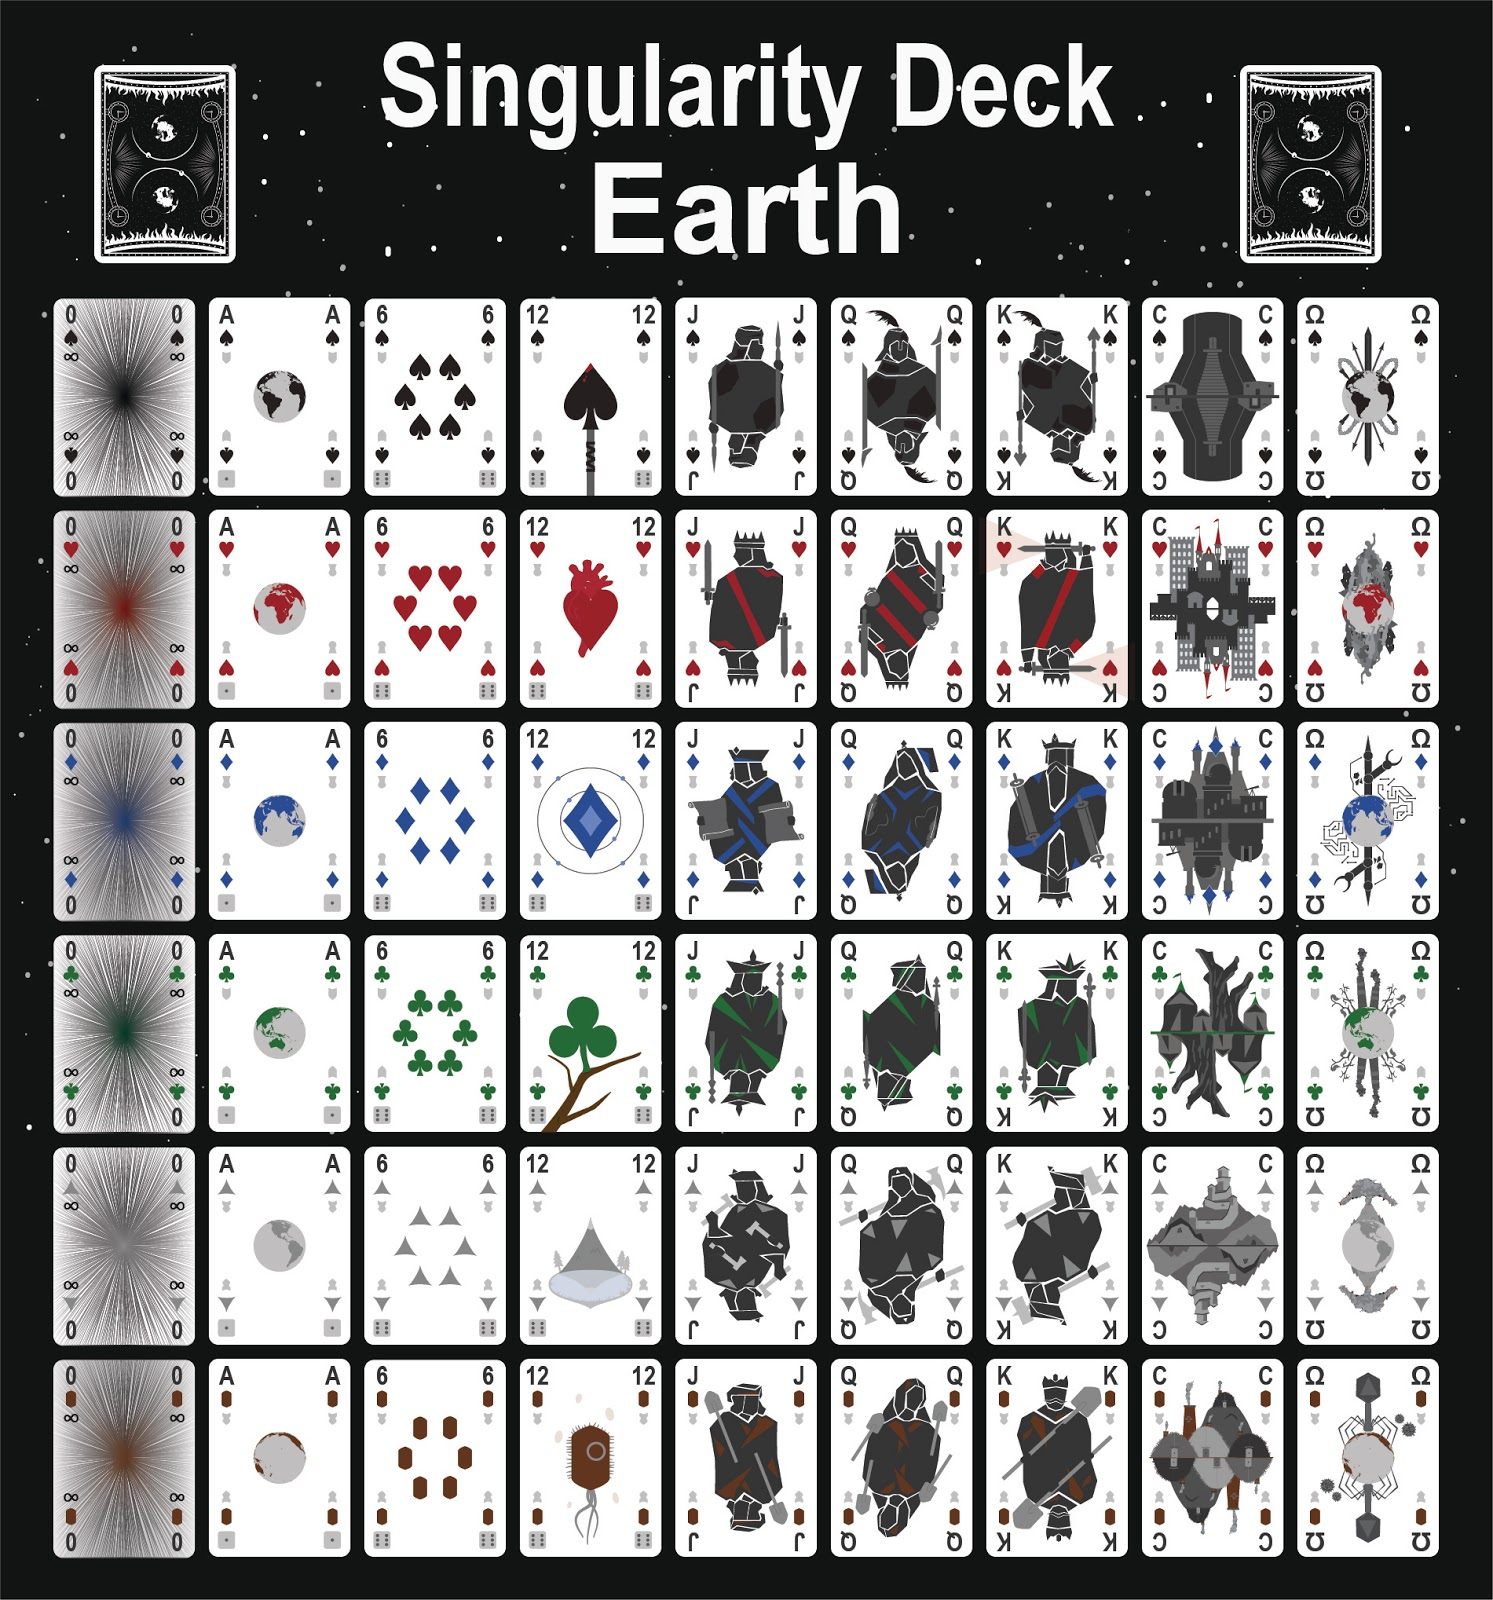 The Singularity Deck - Earth